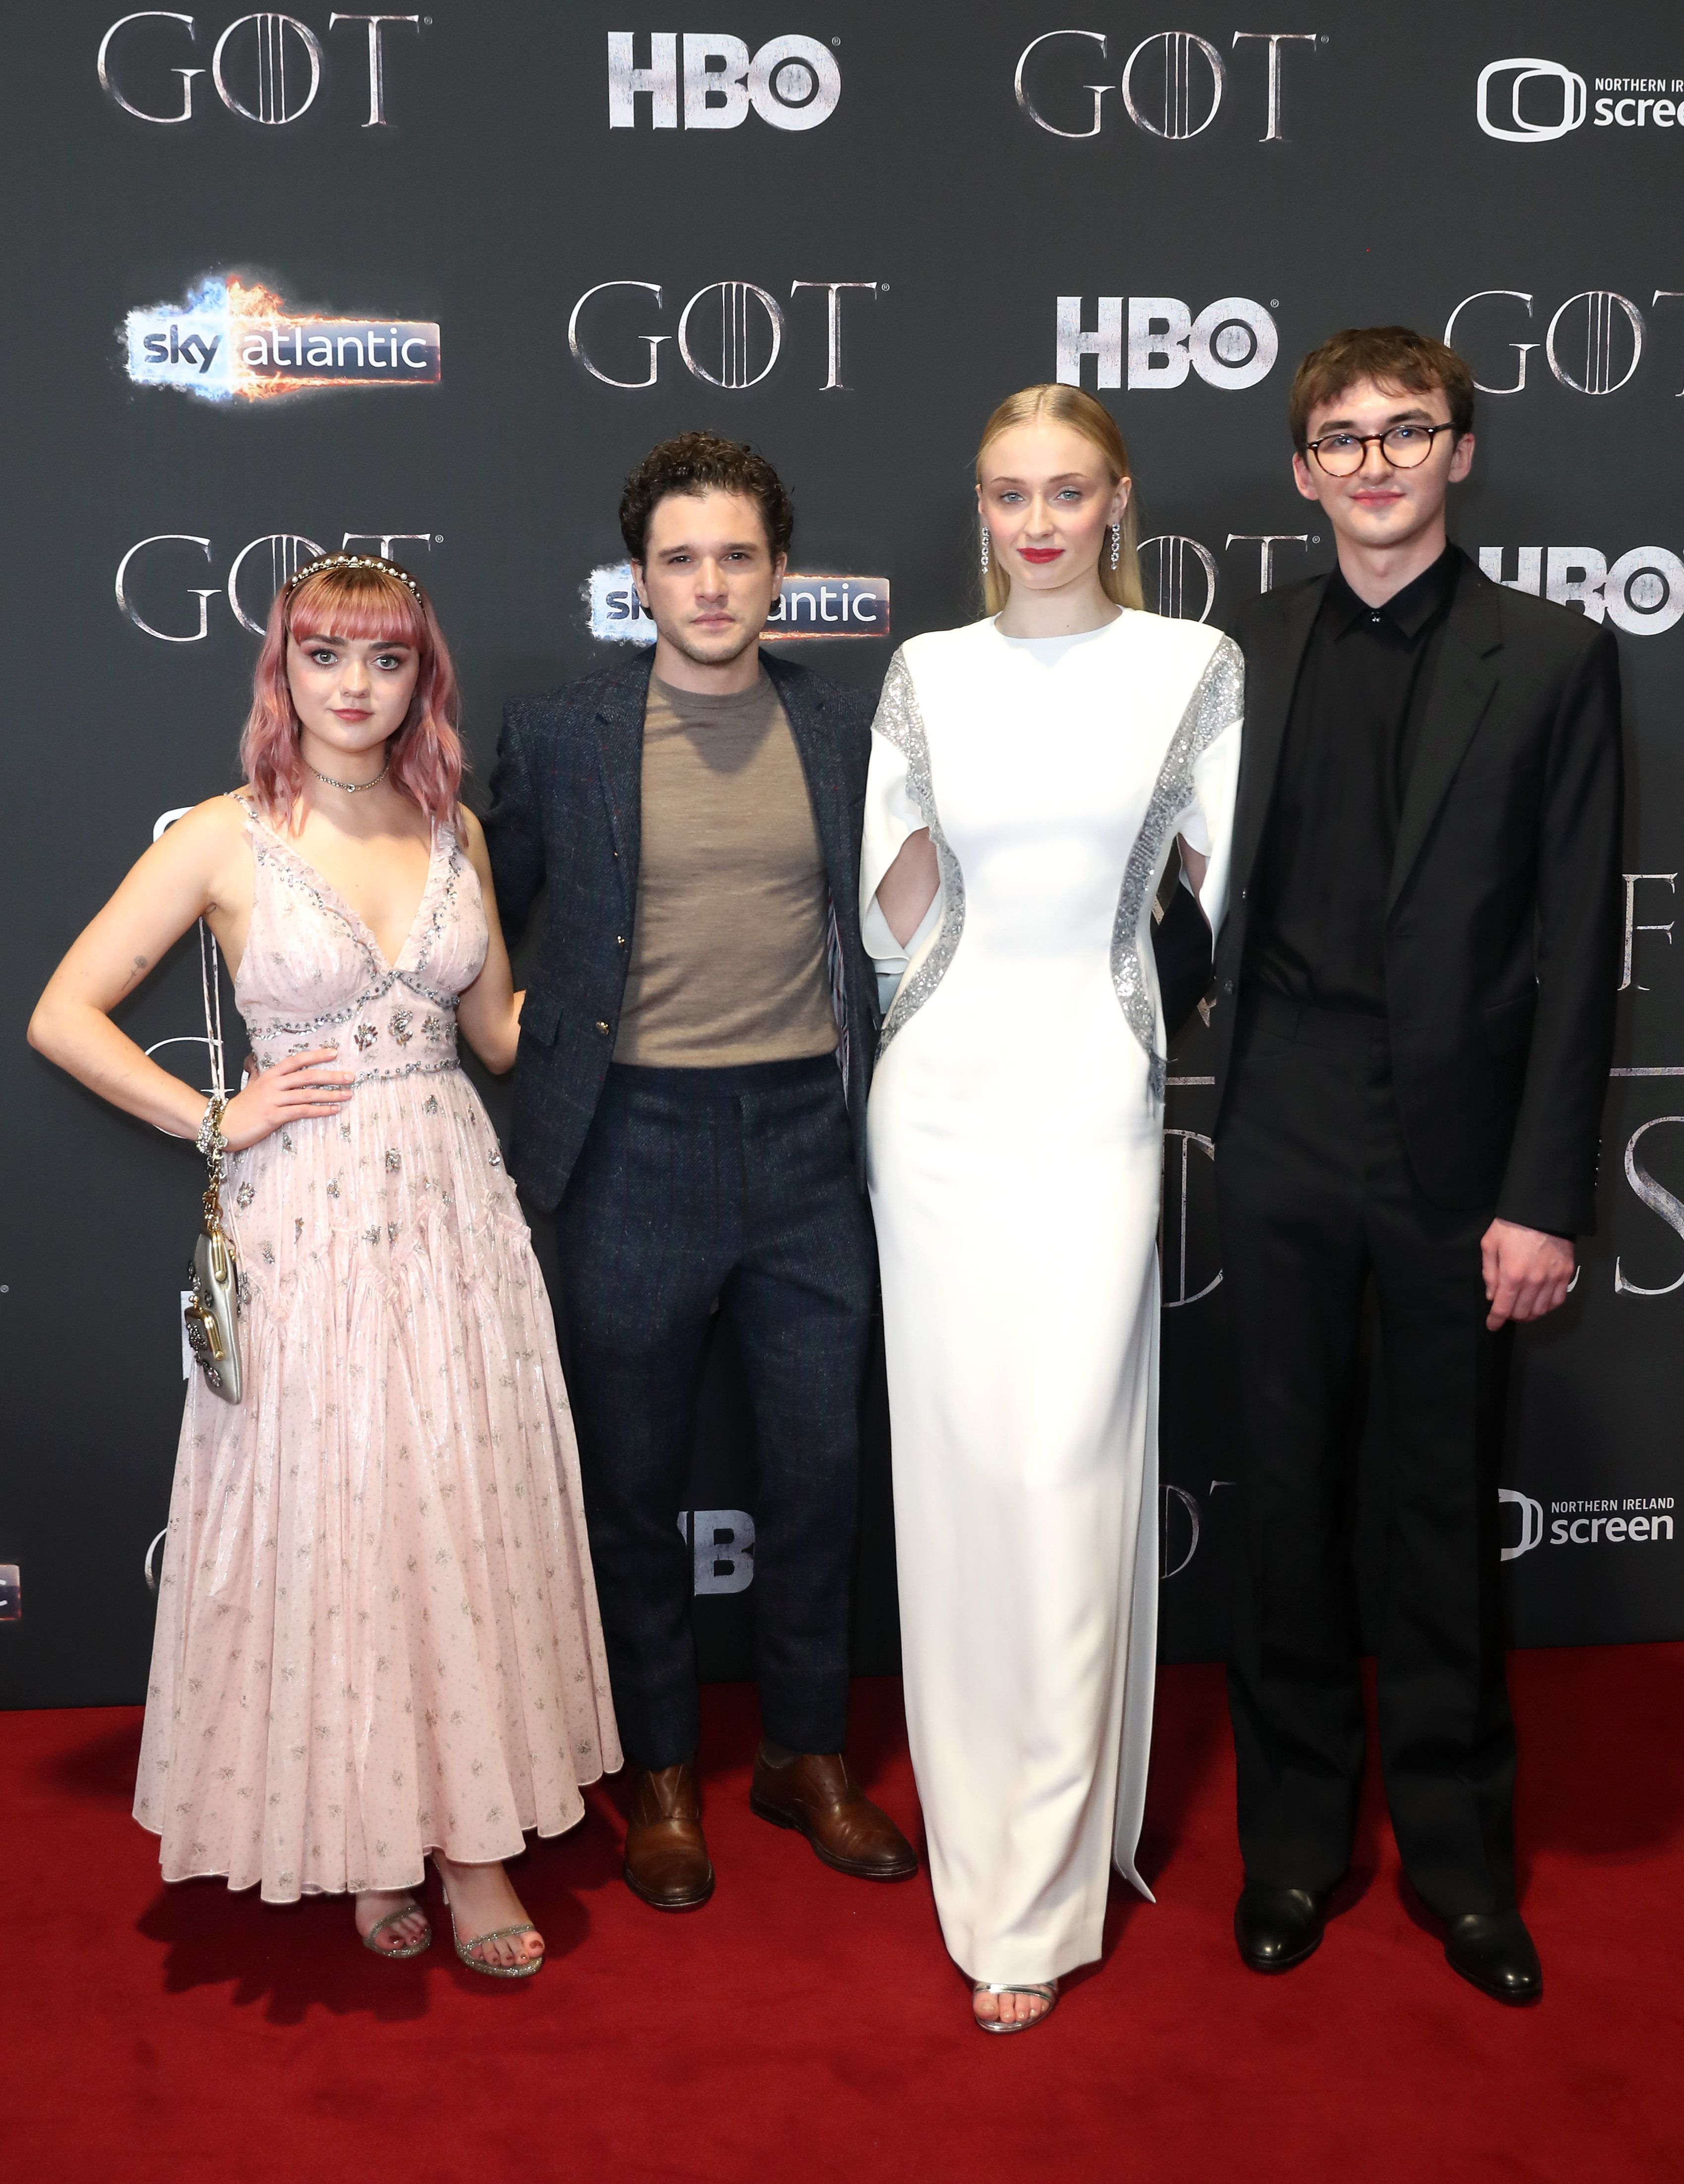 Maisie Williams, Kit Harington, Sophie Turner, and Isaac Hempstead Wright attending the Game of Thrones Premiere, held at Waterfront Hall, Belfast. (Photo by Liam McBurney/PA Images via Getty Images)